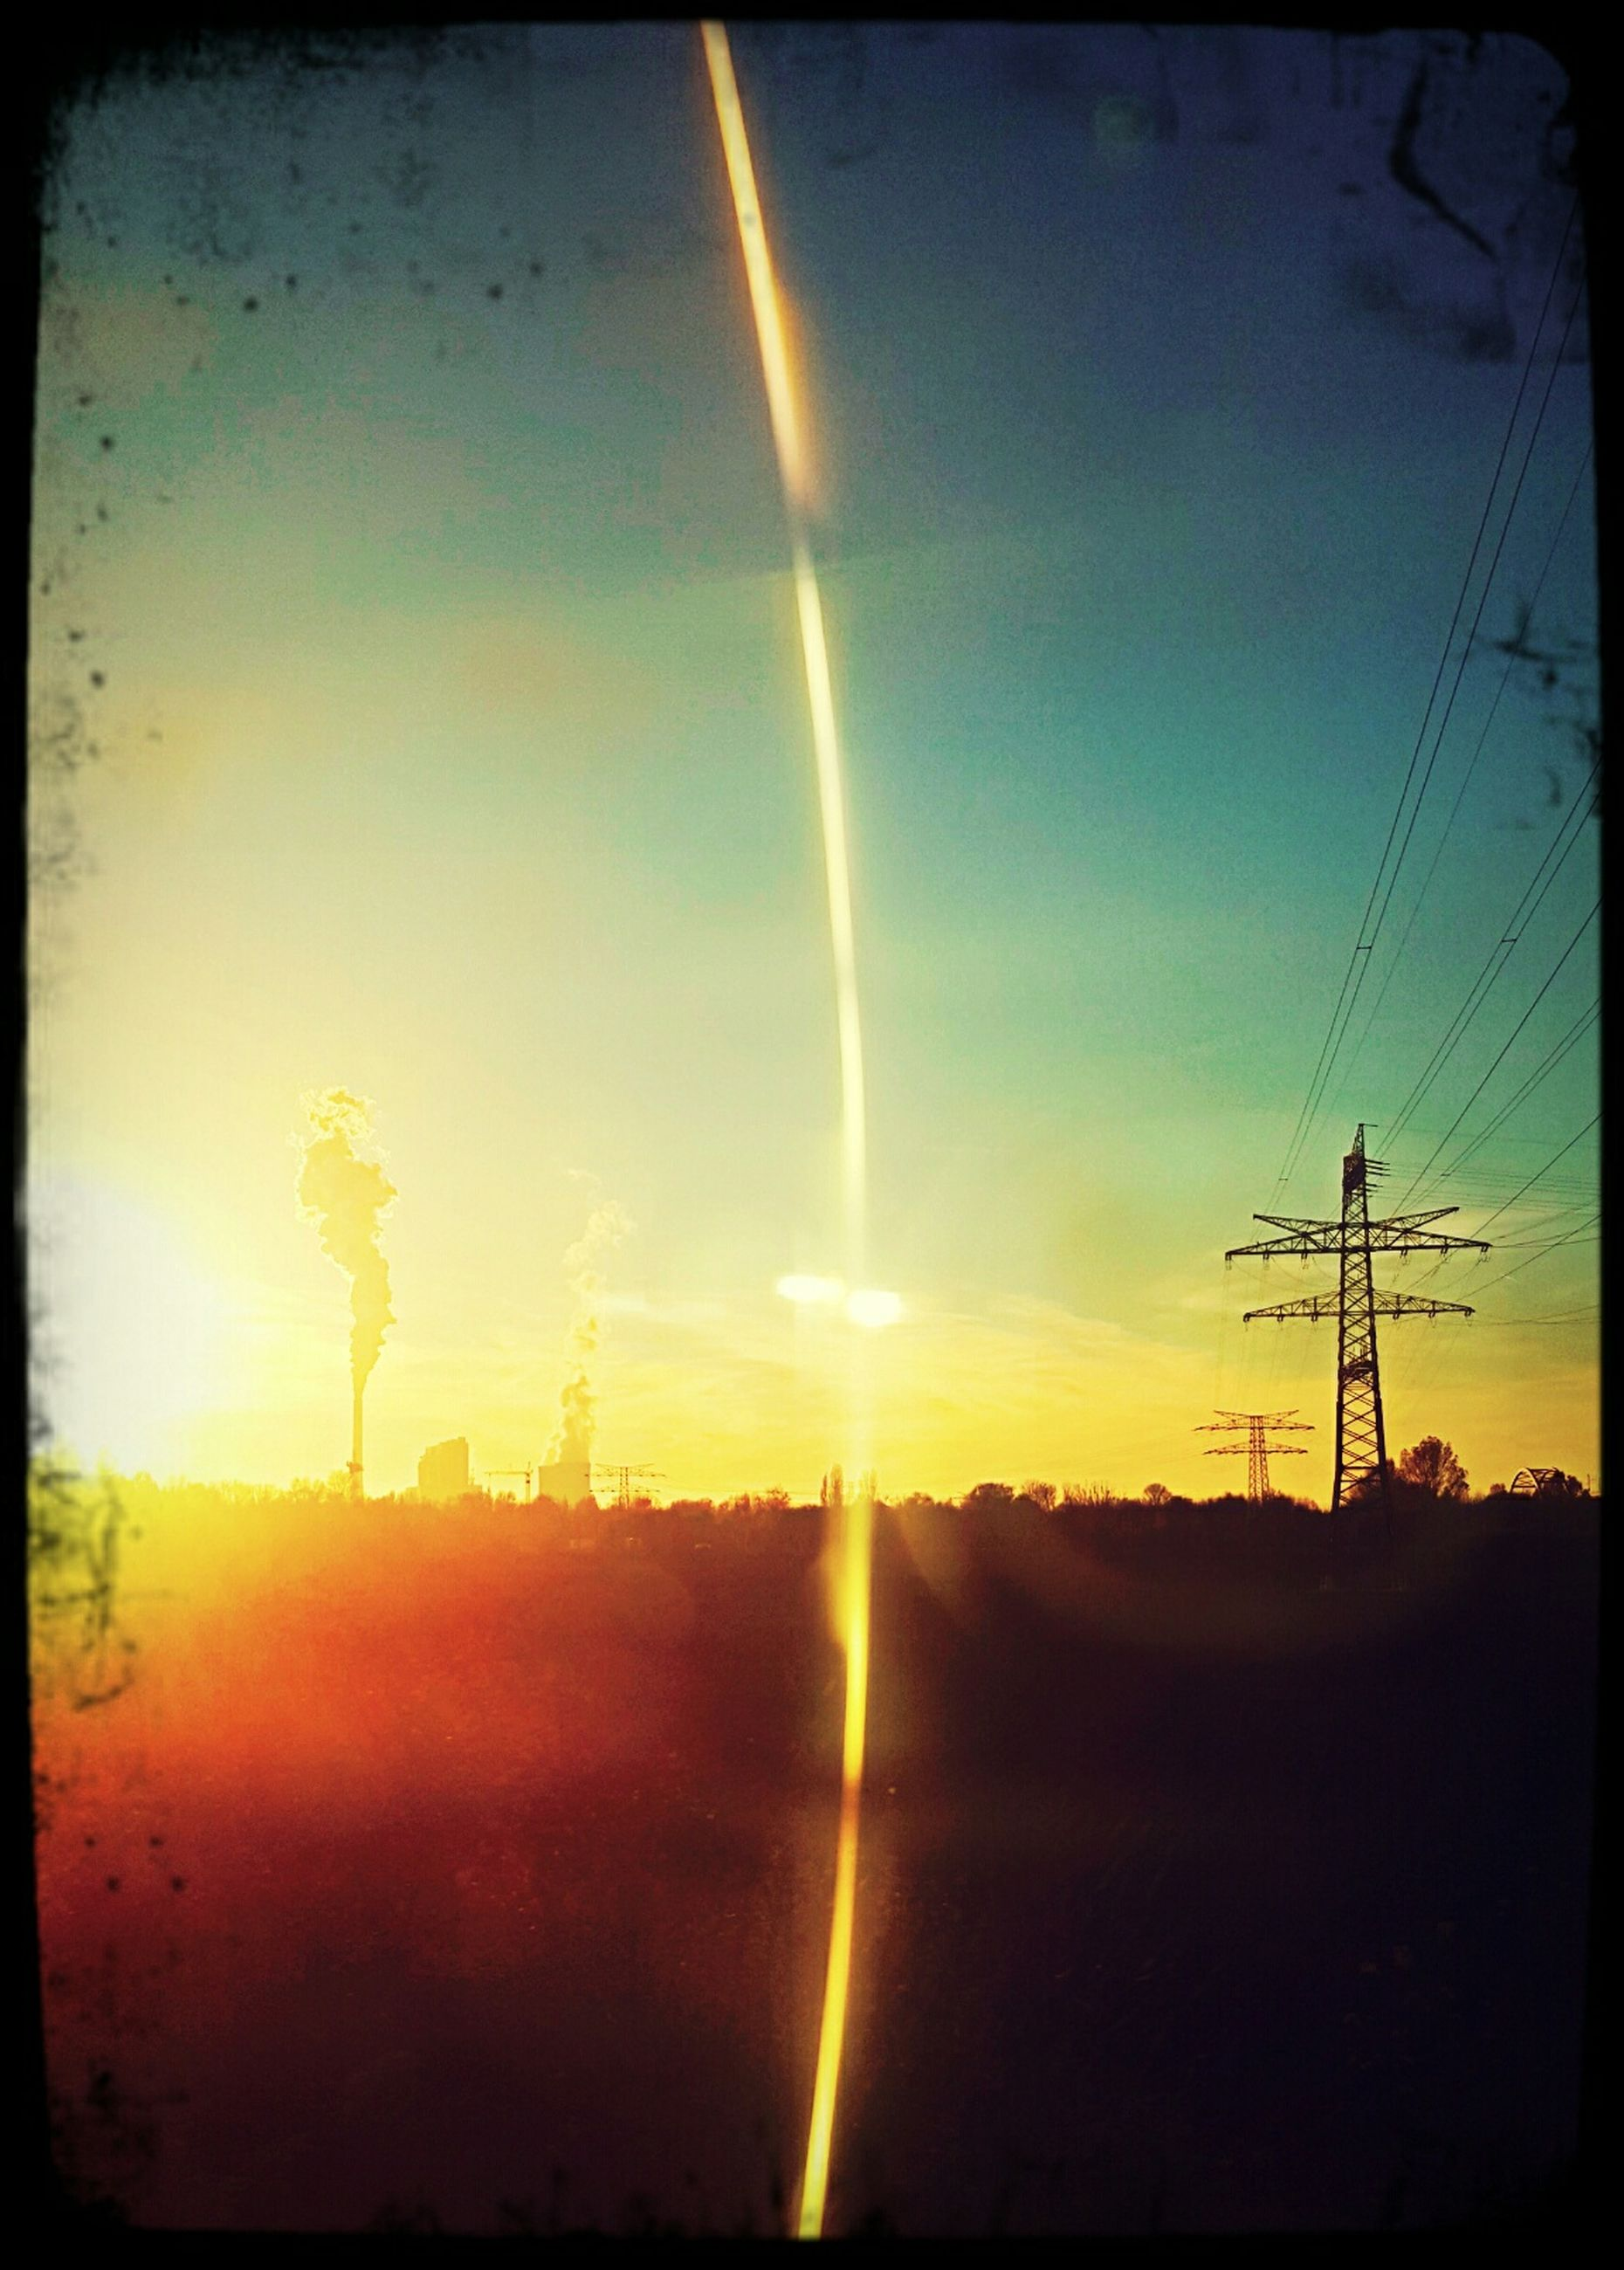 sun, sunset, sunbeam, electricity pylon, power line, sunlight, lens flare, fuel and power generation, scenics, tranquil scene, tranquility, sky, landscape, electricity, silhouette, beauty in nature, nature, power supply, transfer print, idyllic